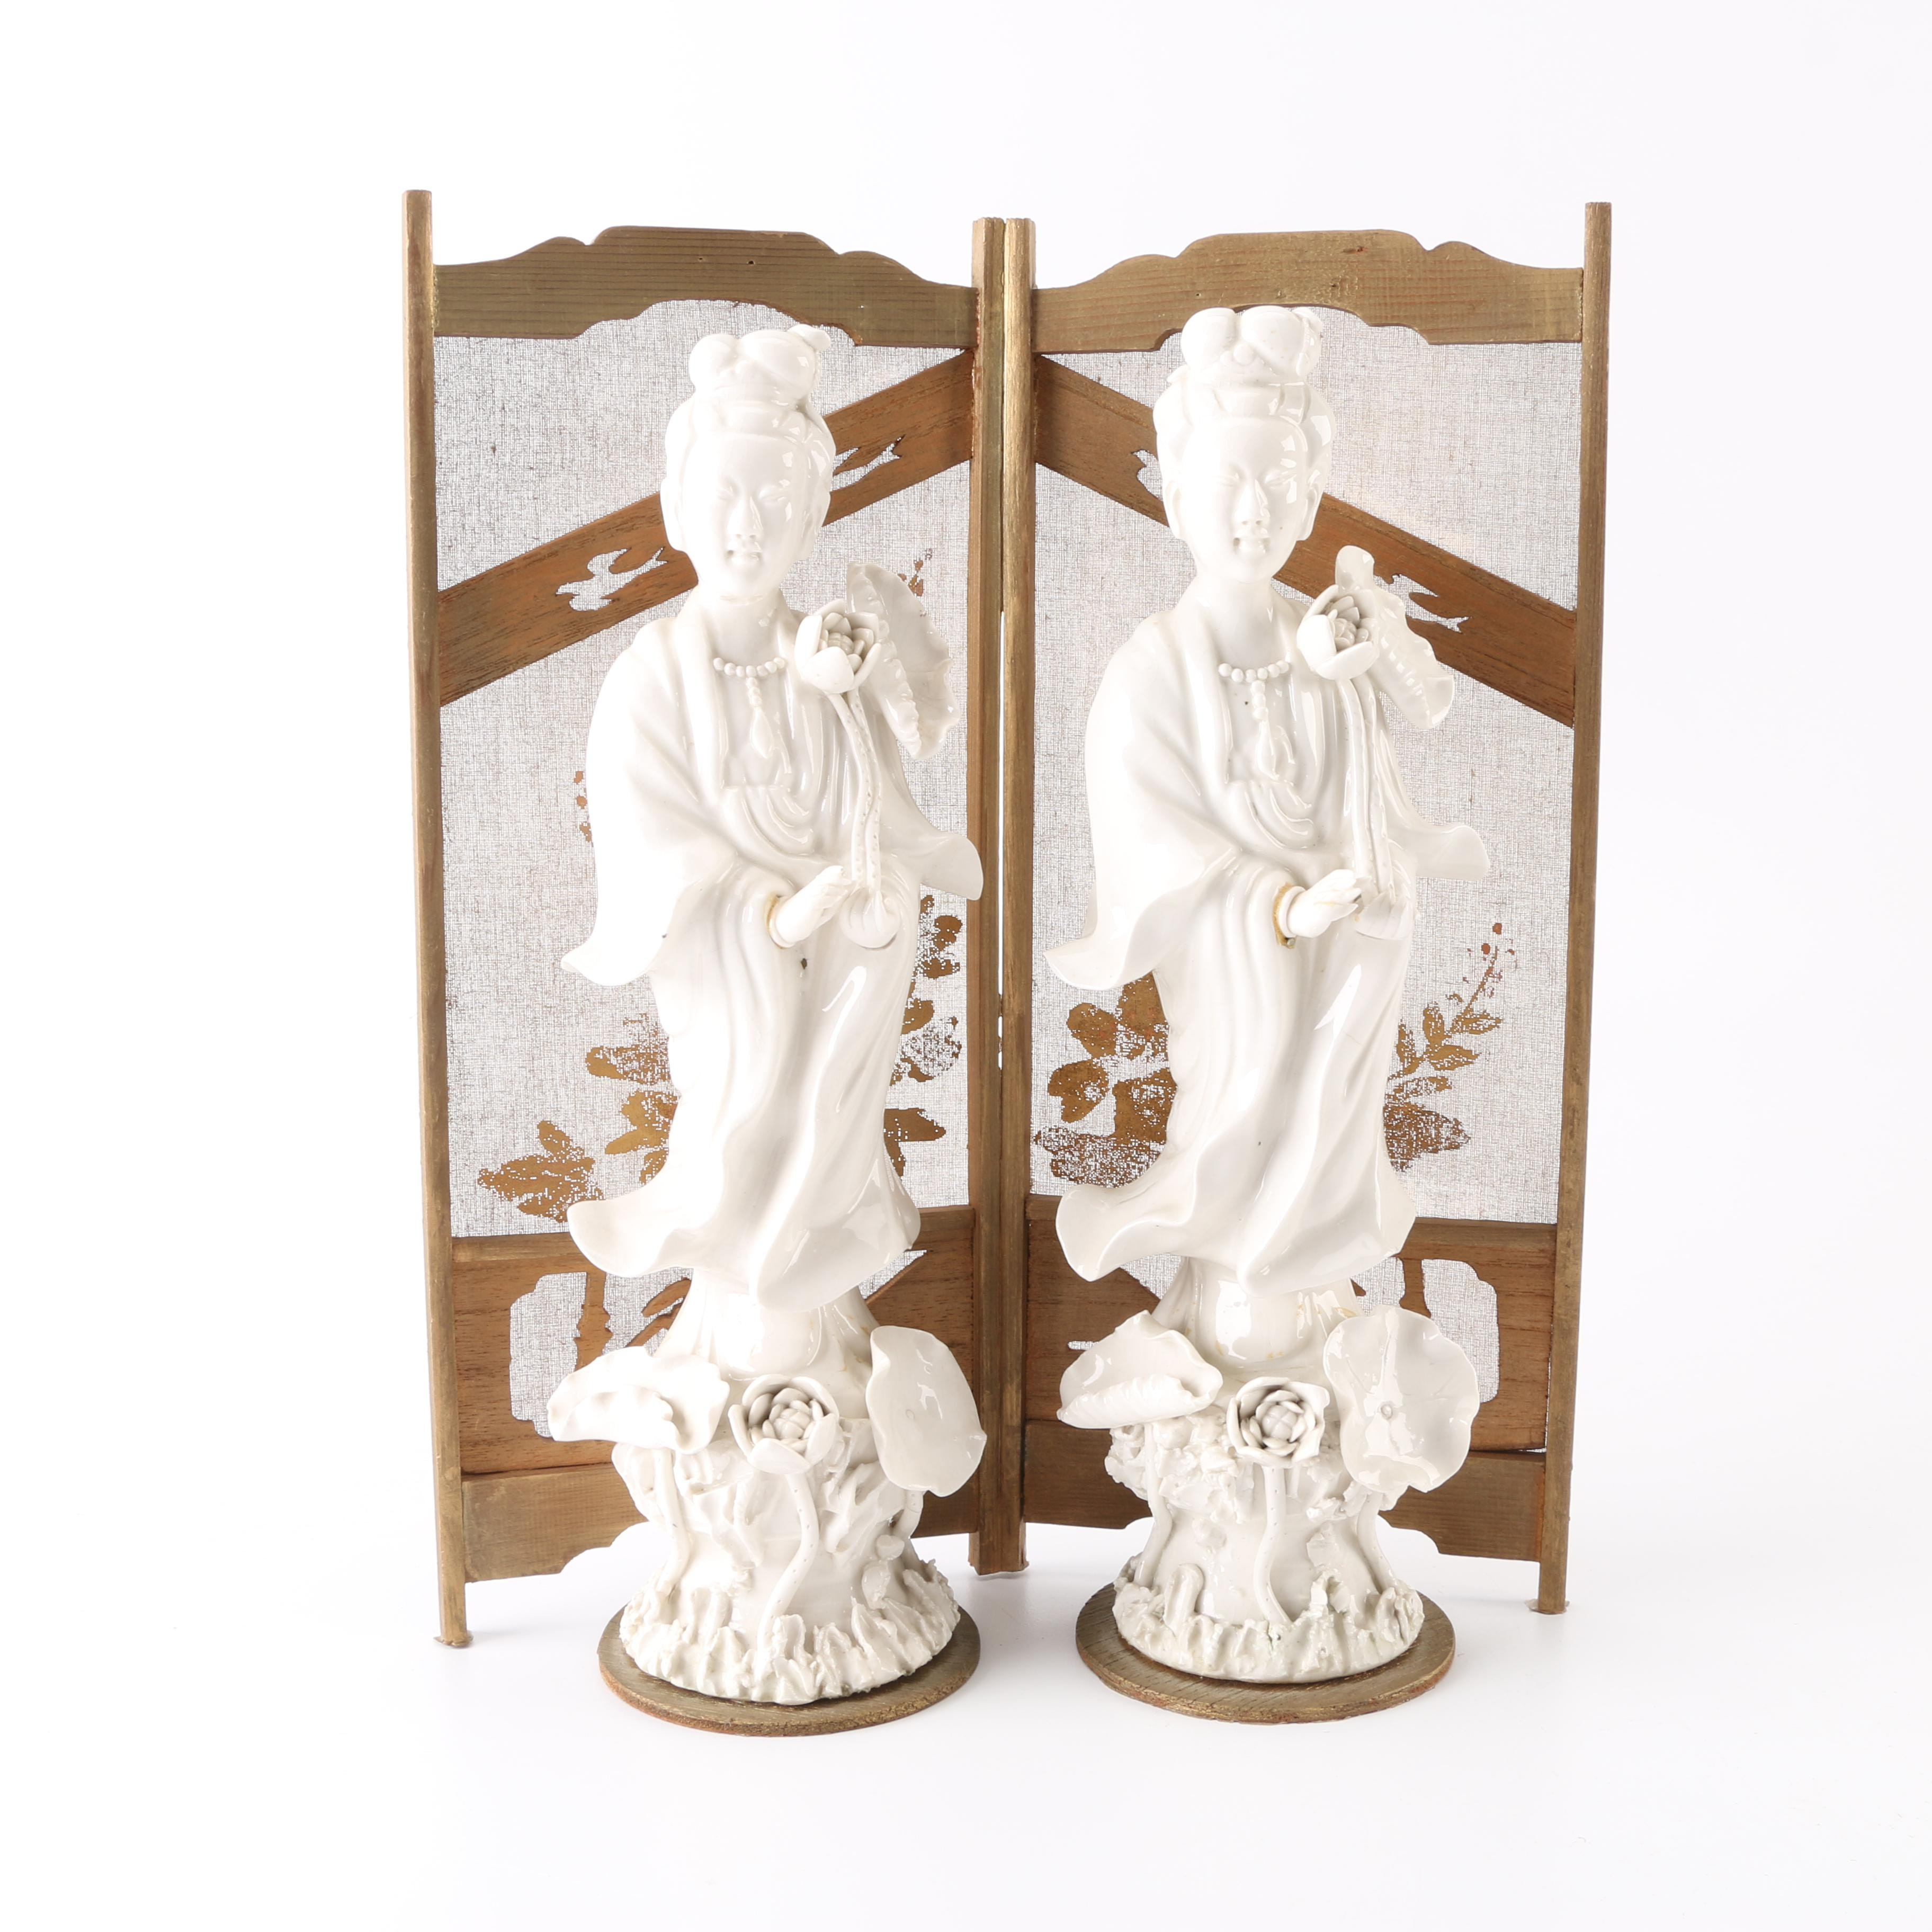 Pair of Chinese Guanyin Porcelain Figurines With Wooden Screen